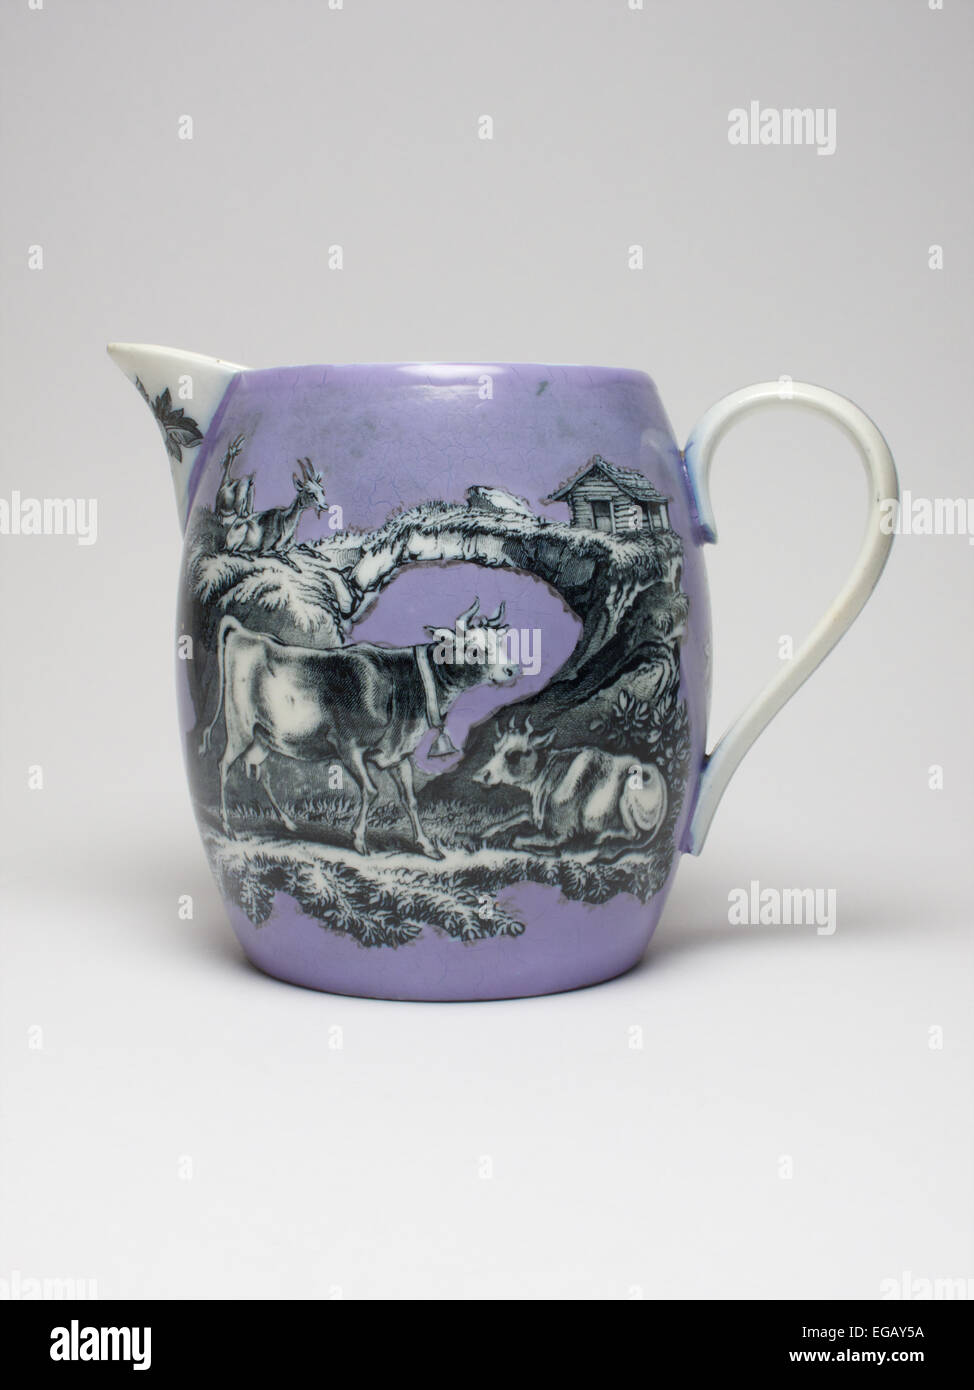 Antique pottery jug. The jug measures 15.5cm high and is apparently unmarked. - Stock Image